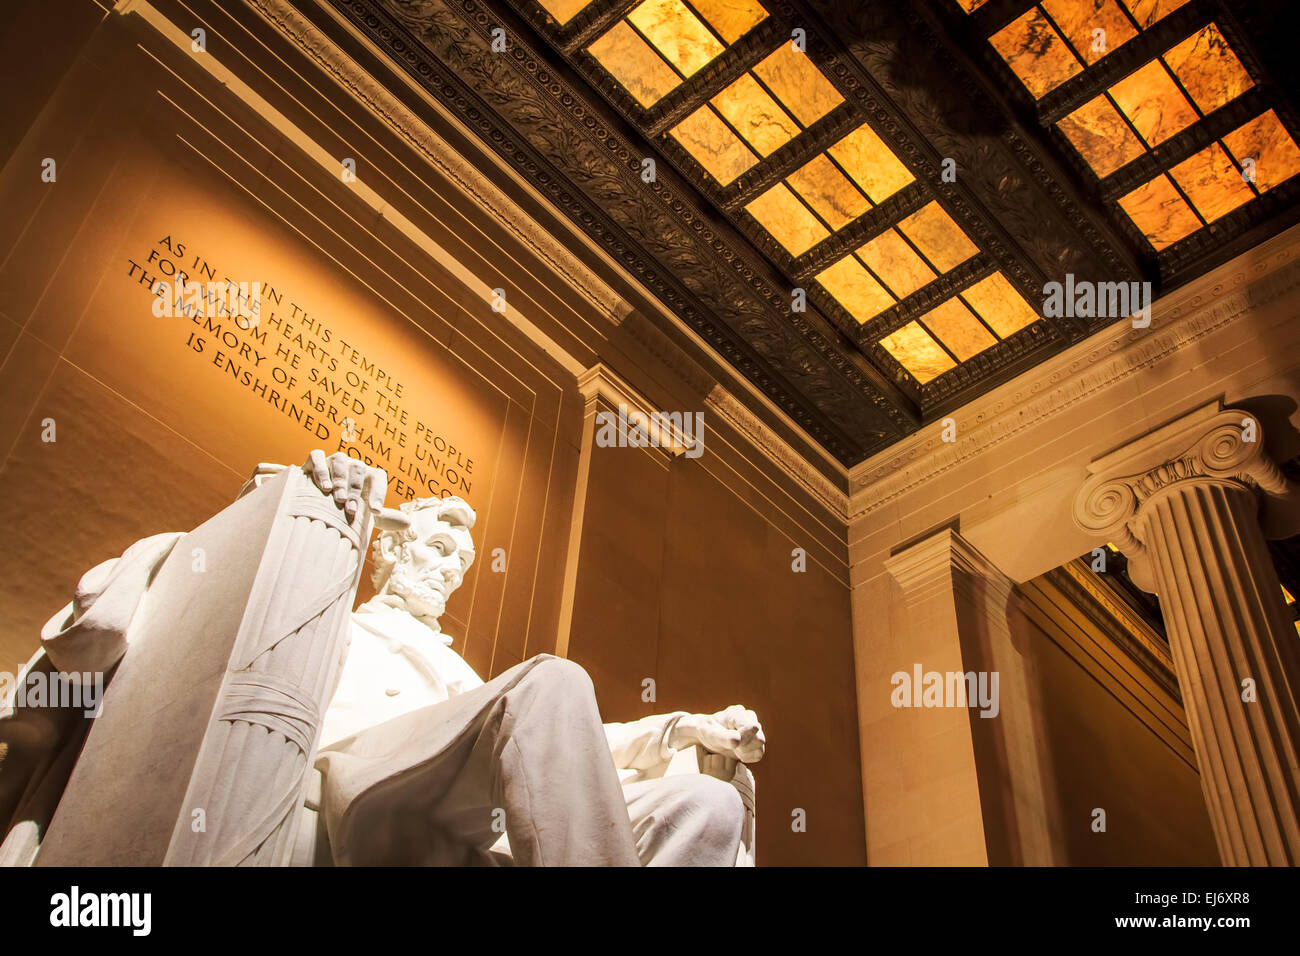 Il potente Lincoln Memorial nel National Mall di Washington, come visto durante la notte con la parete di incisione Immagini Stock